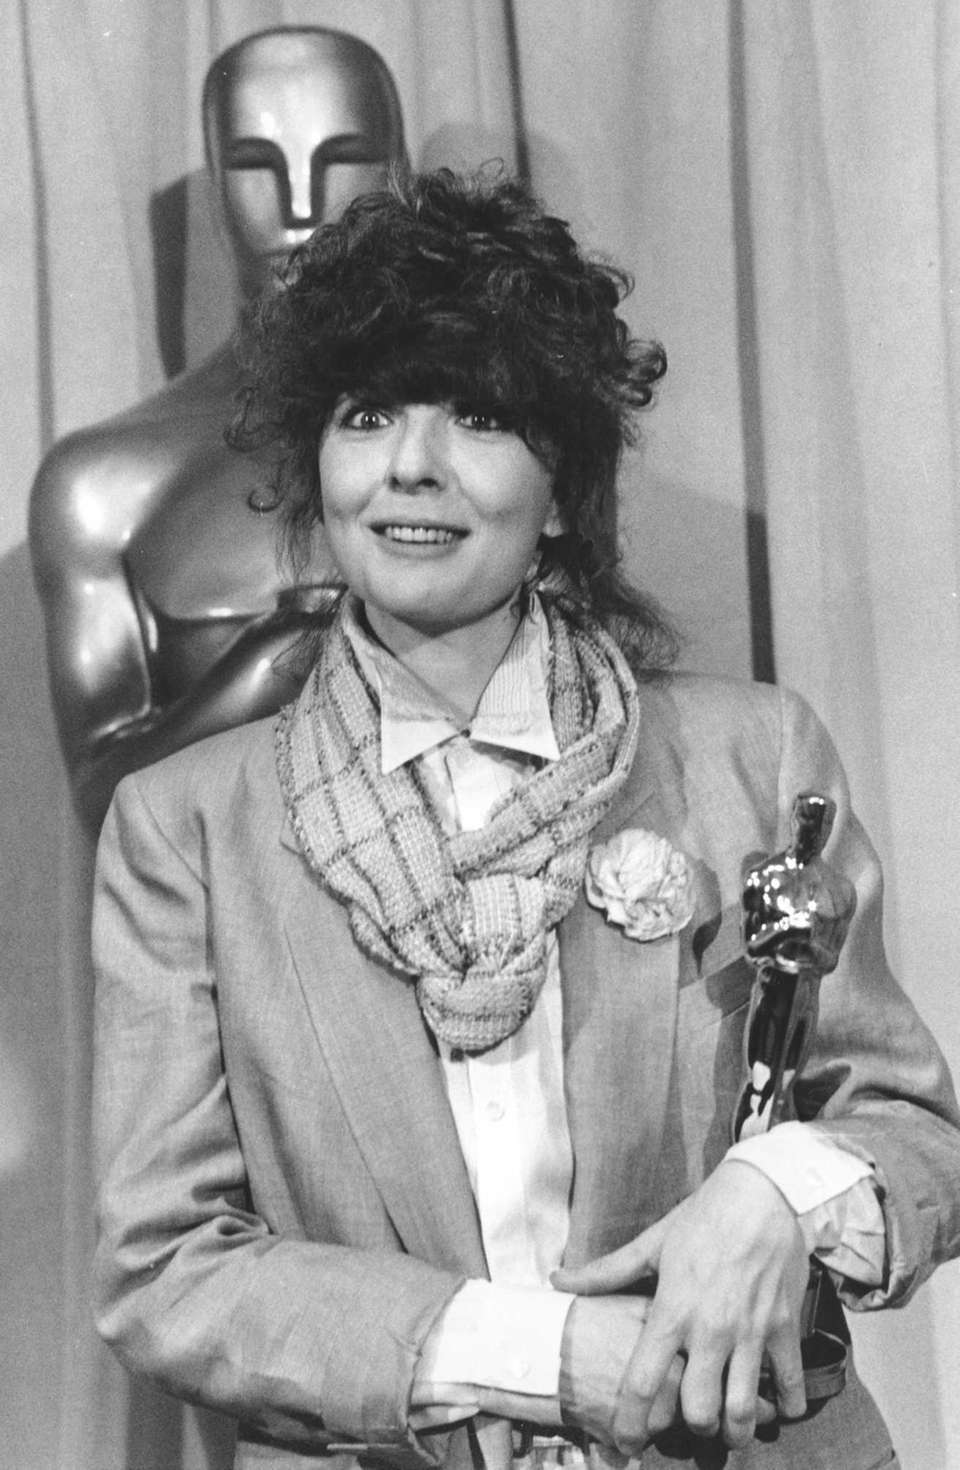 Actor Diane Keaton, posing with her Oscar statuette